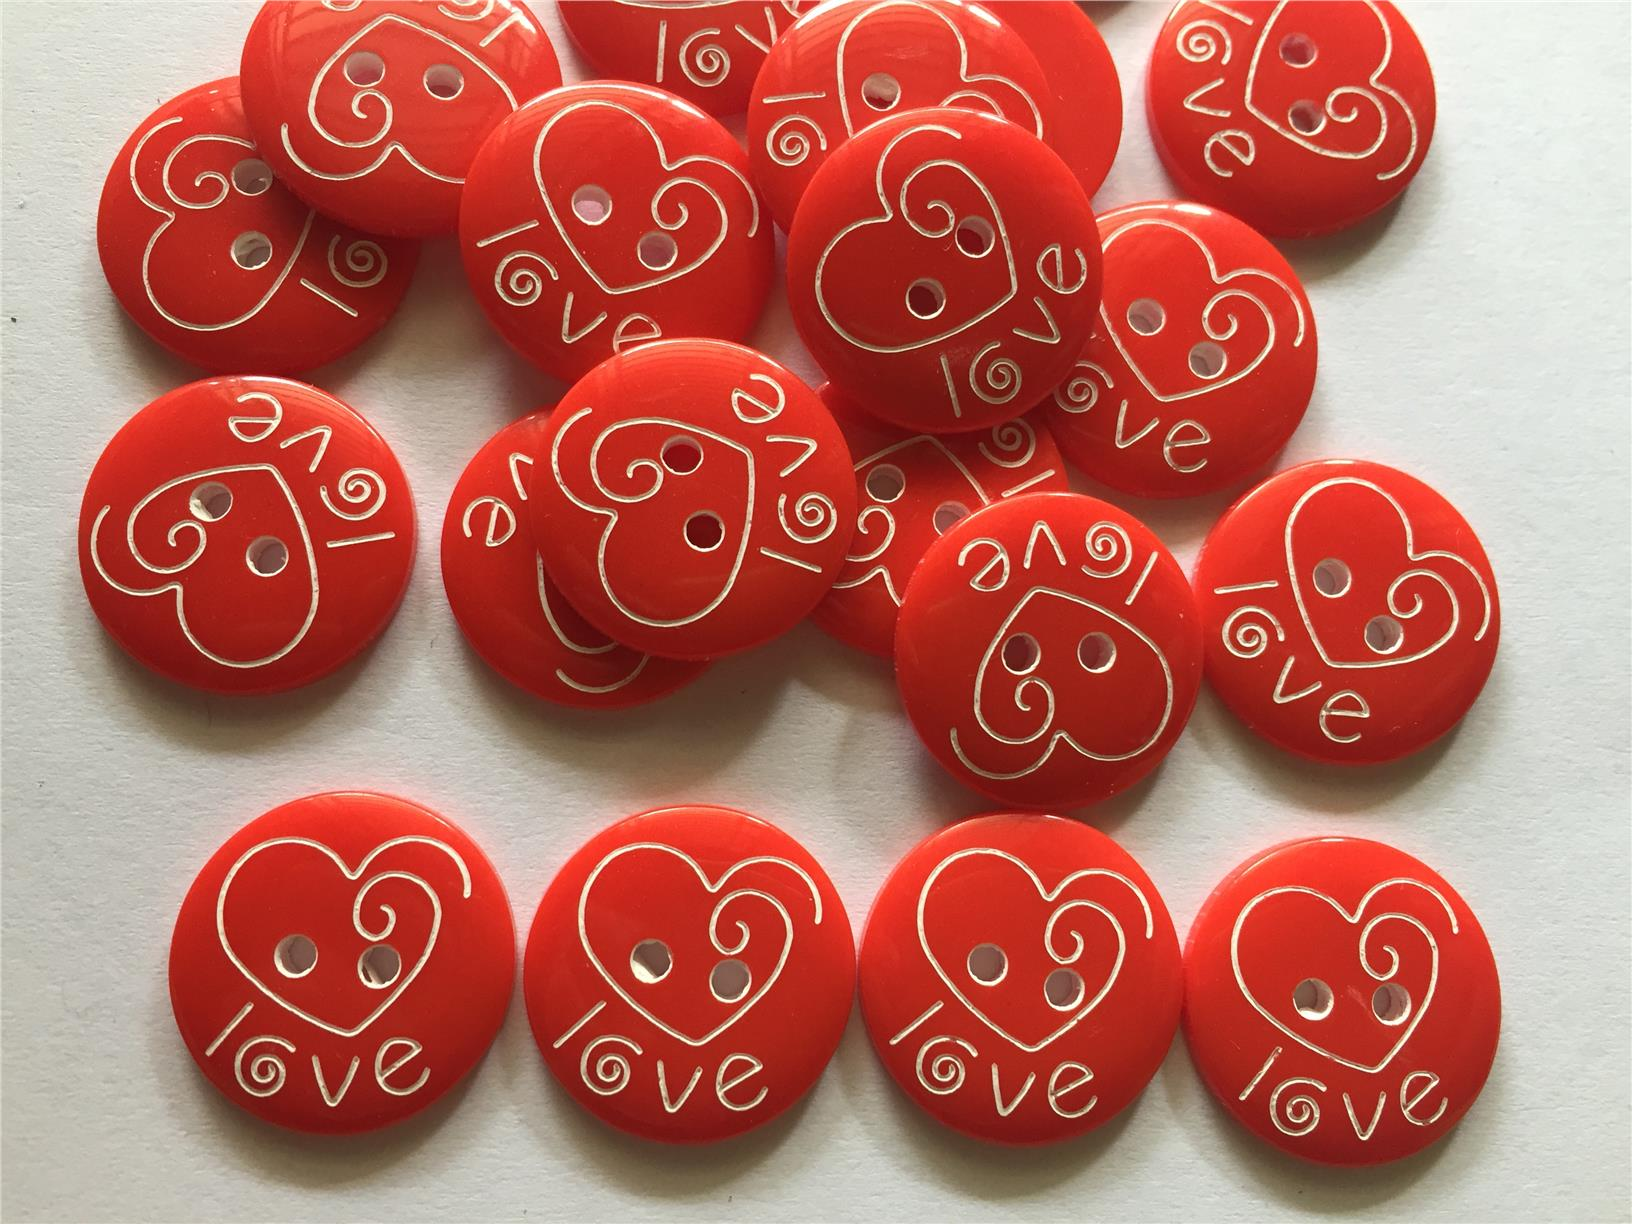 26 pcs Red heart love laser carved buttons size 18 mm